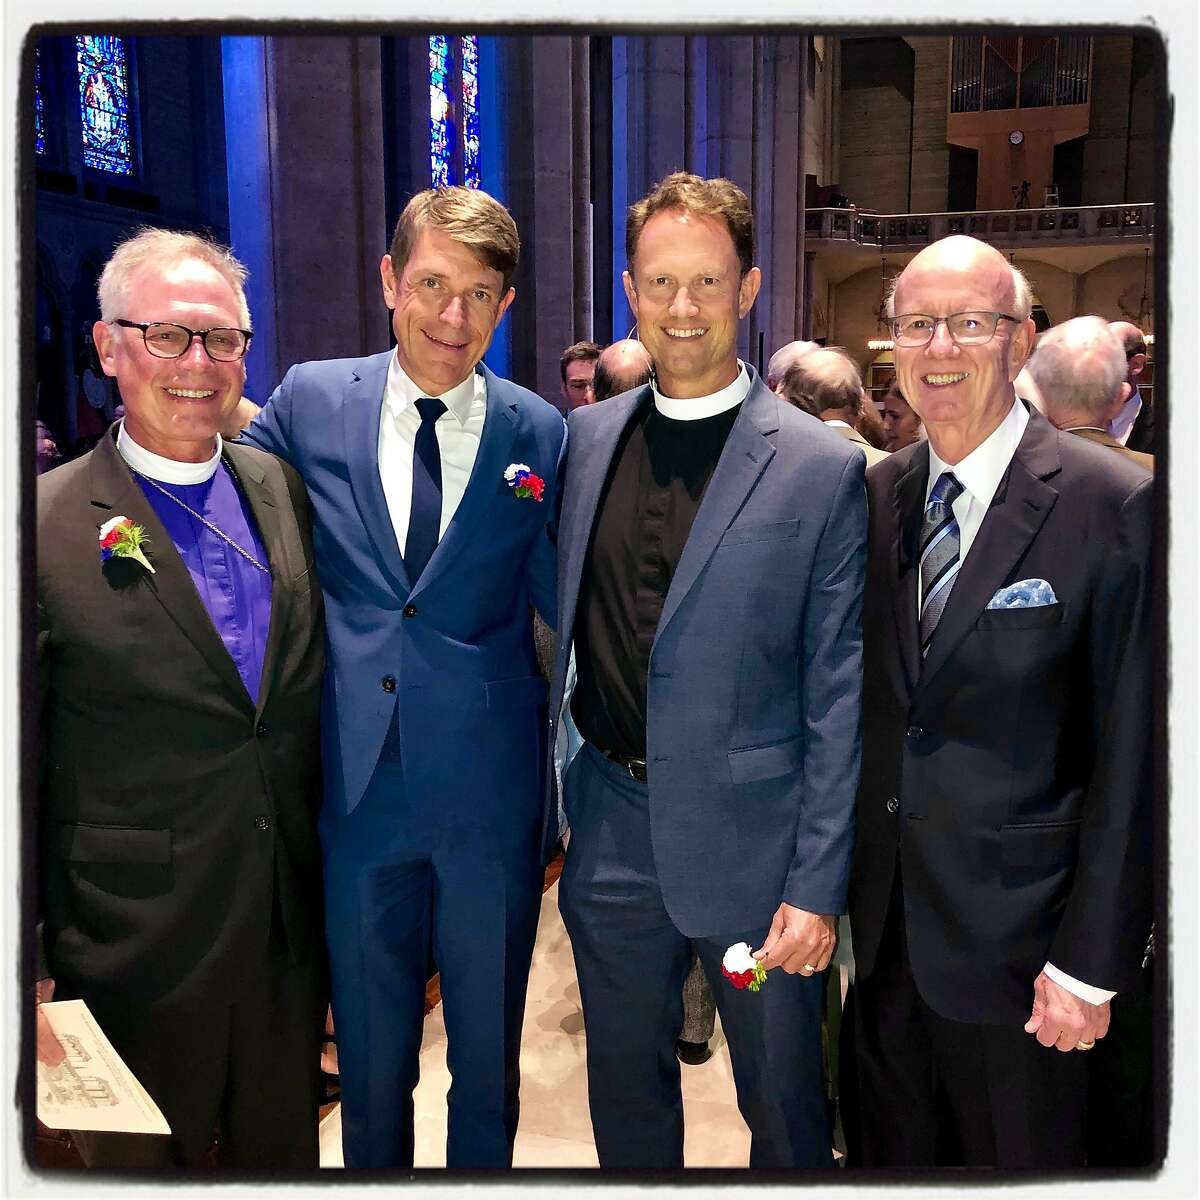 Bishop Marc Andrus (at left) with French Consul General Emmanuel Lebrun-Damiens, Grace Cathedral's Malcom Young and Paris Sister City chairman Tom Horn. April 29, 2019.